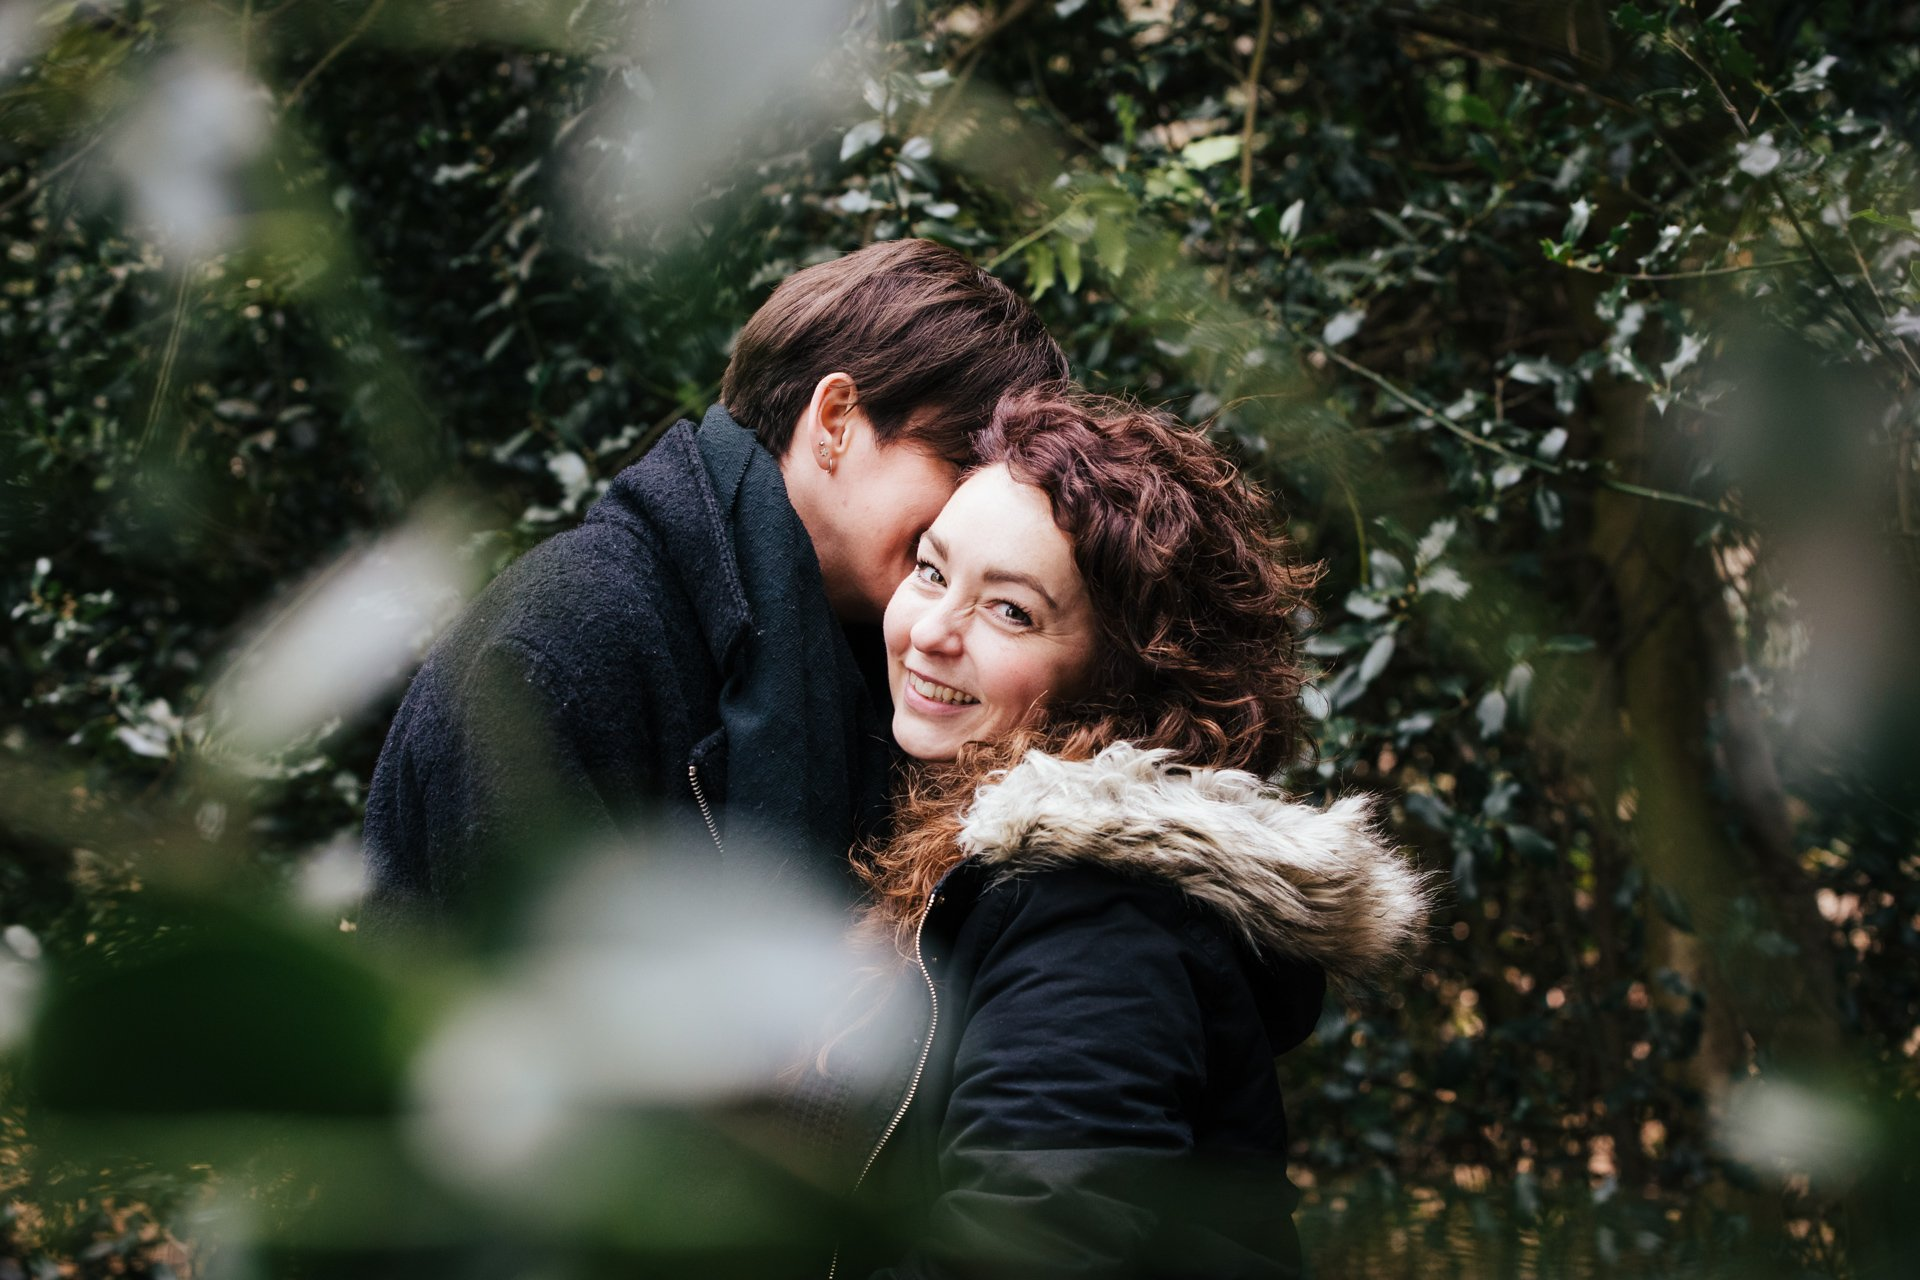 Two gorgeous ladies smiling during their engagement shoot at Shorne Woods Country Park in Kent